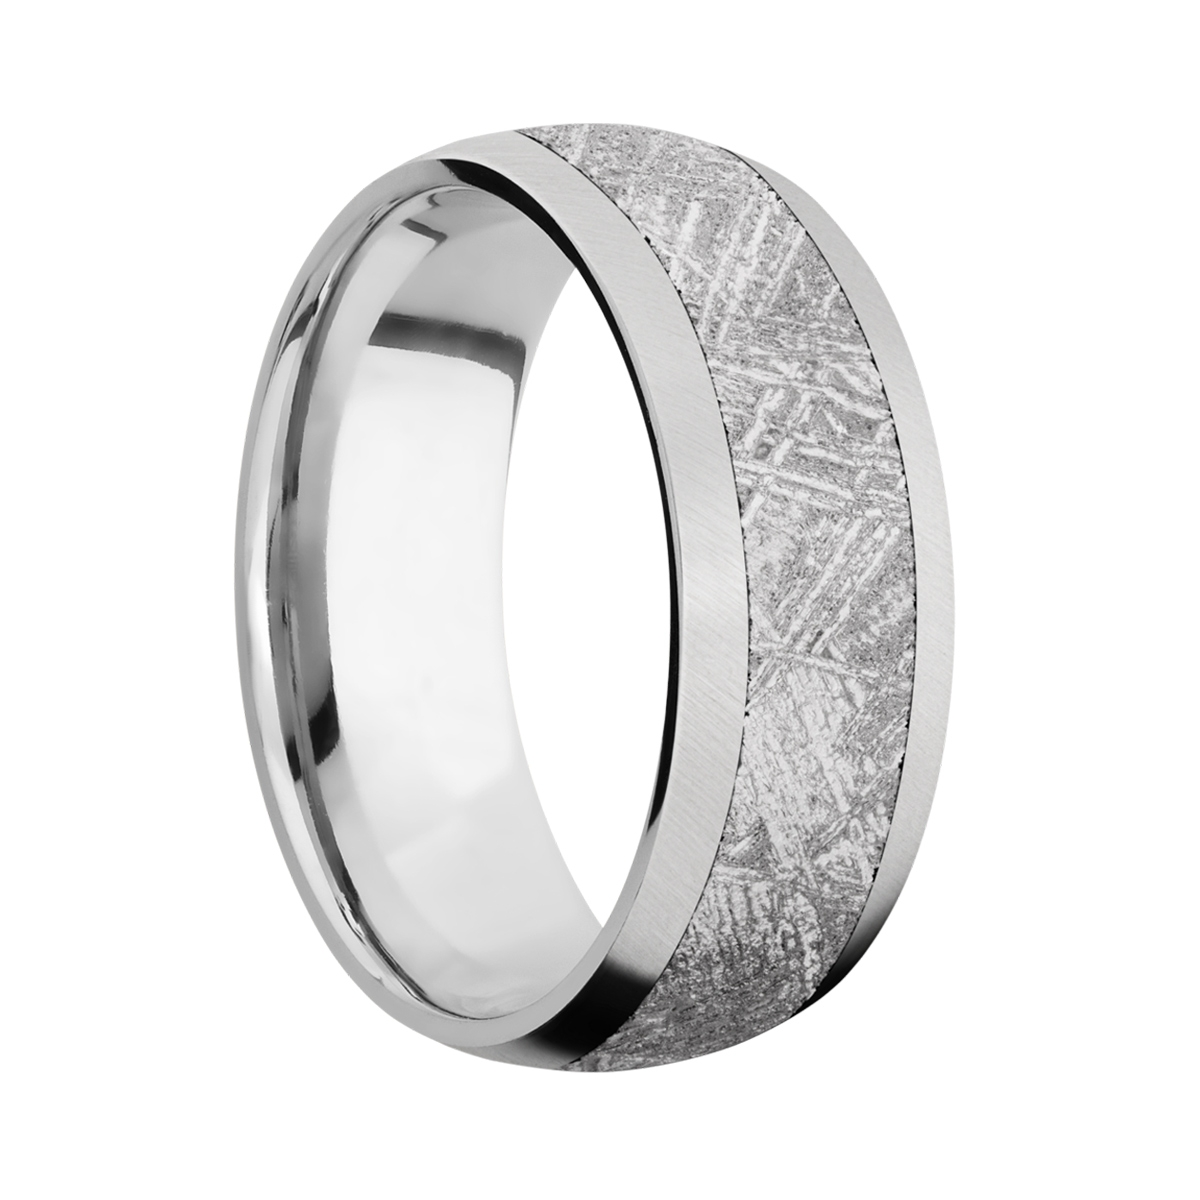 Lashbrook CC8D15/Meteorite Cobalt Chrome Wedding Ring or Band Alternative View 1